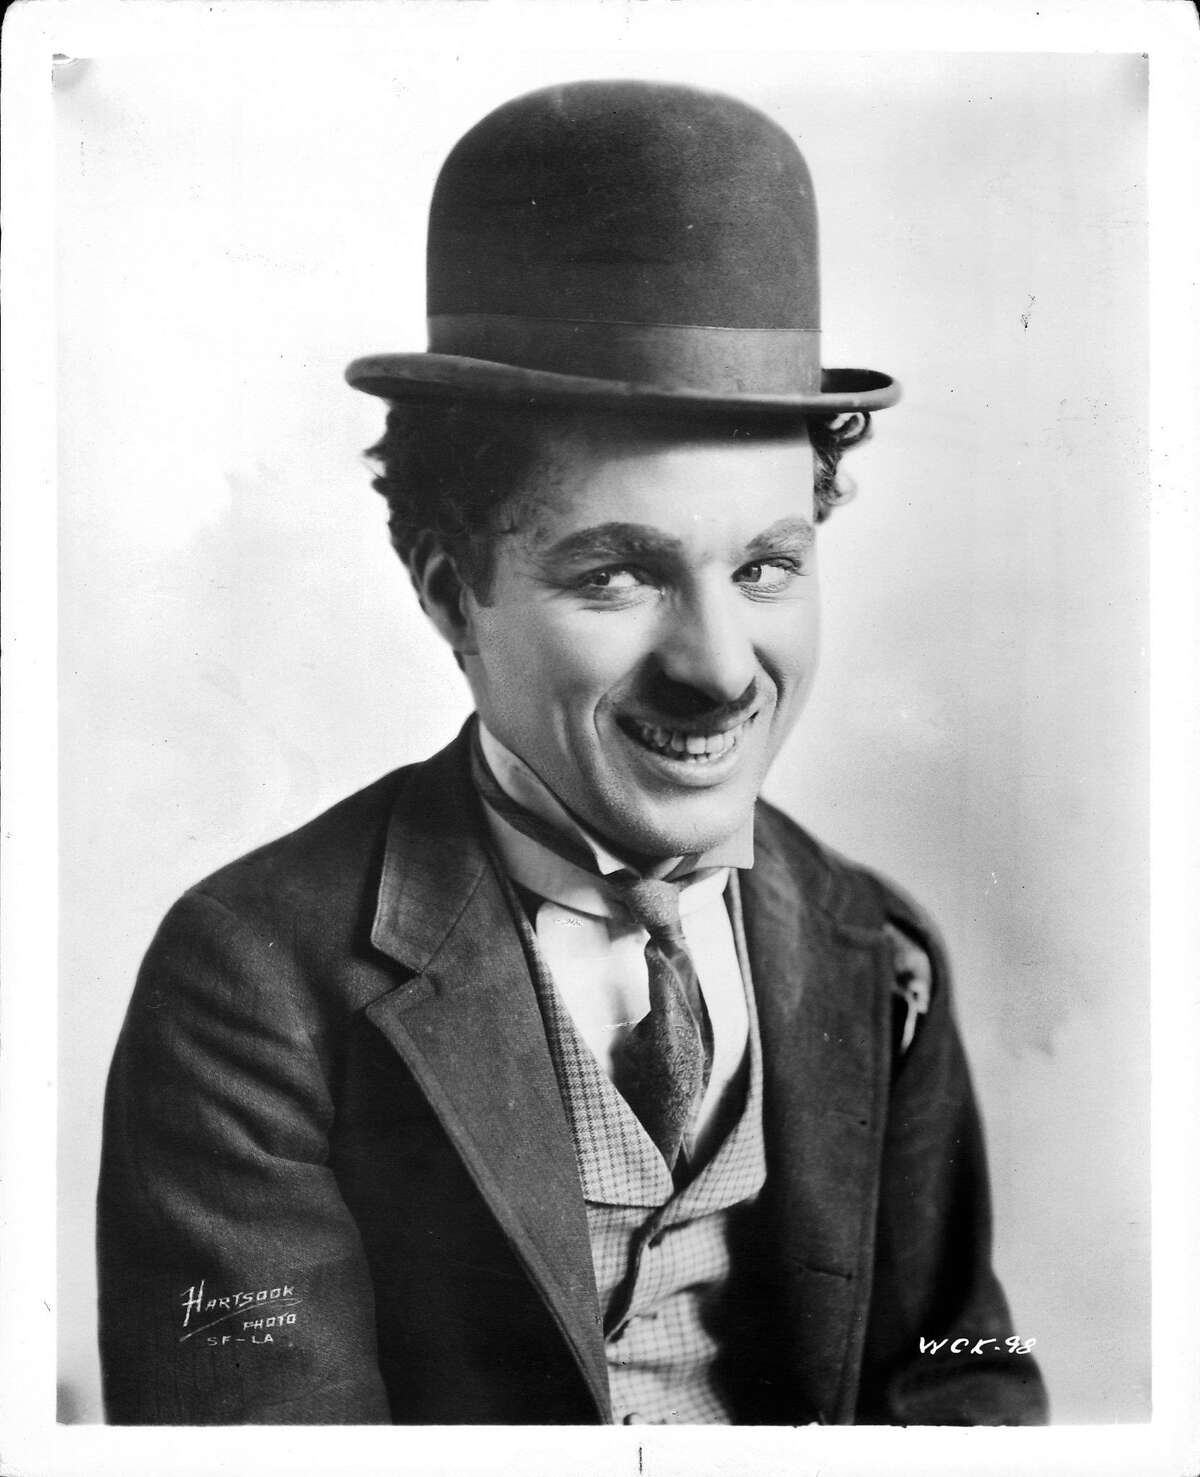 Charles Chaplin publicity portrait for the short 'A Night Out', 1915. (Photo by General Film Company/Getty Images)